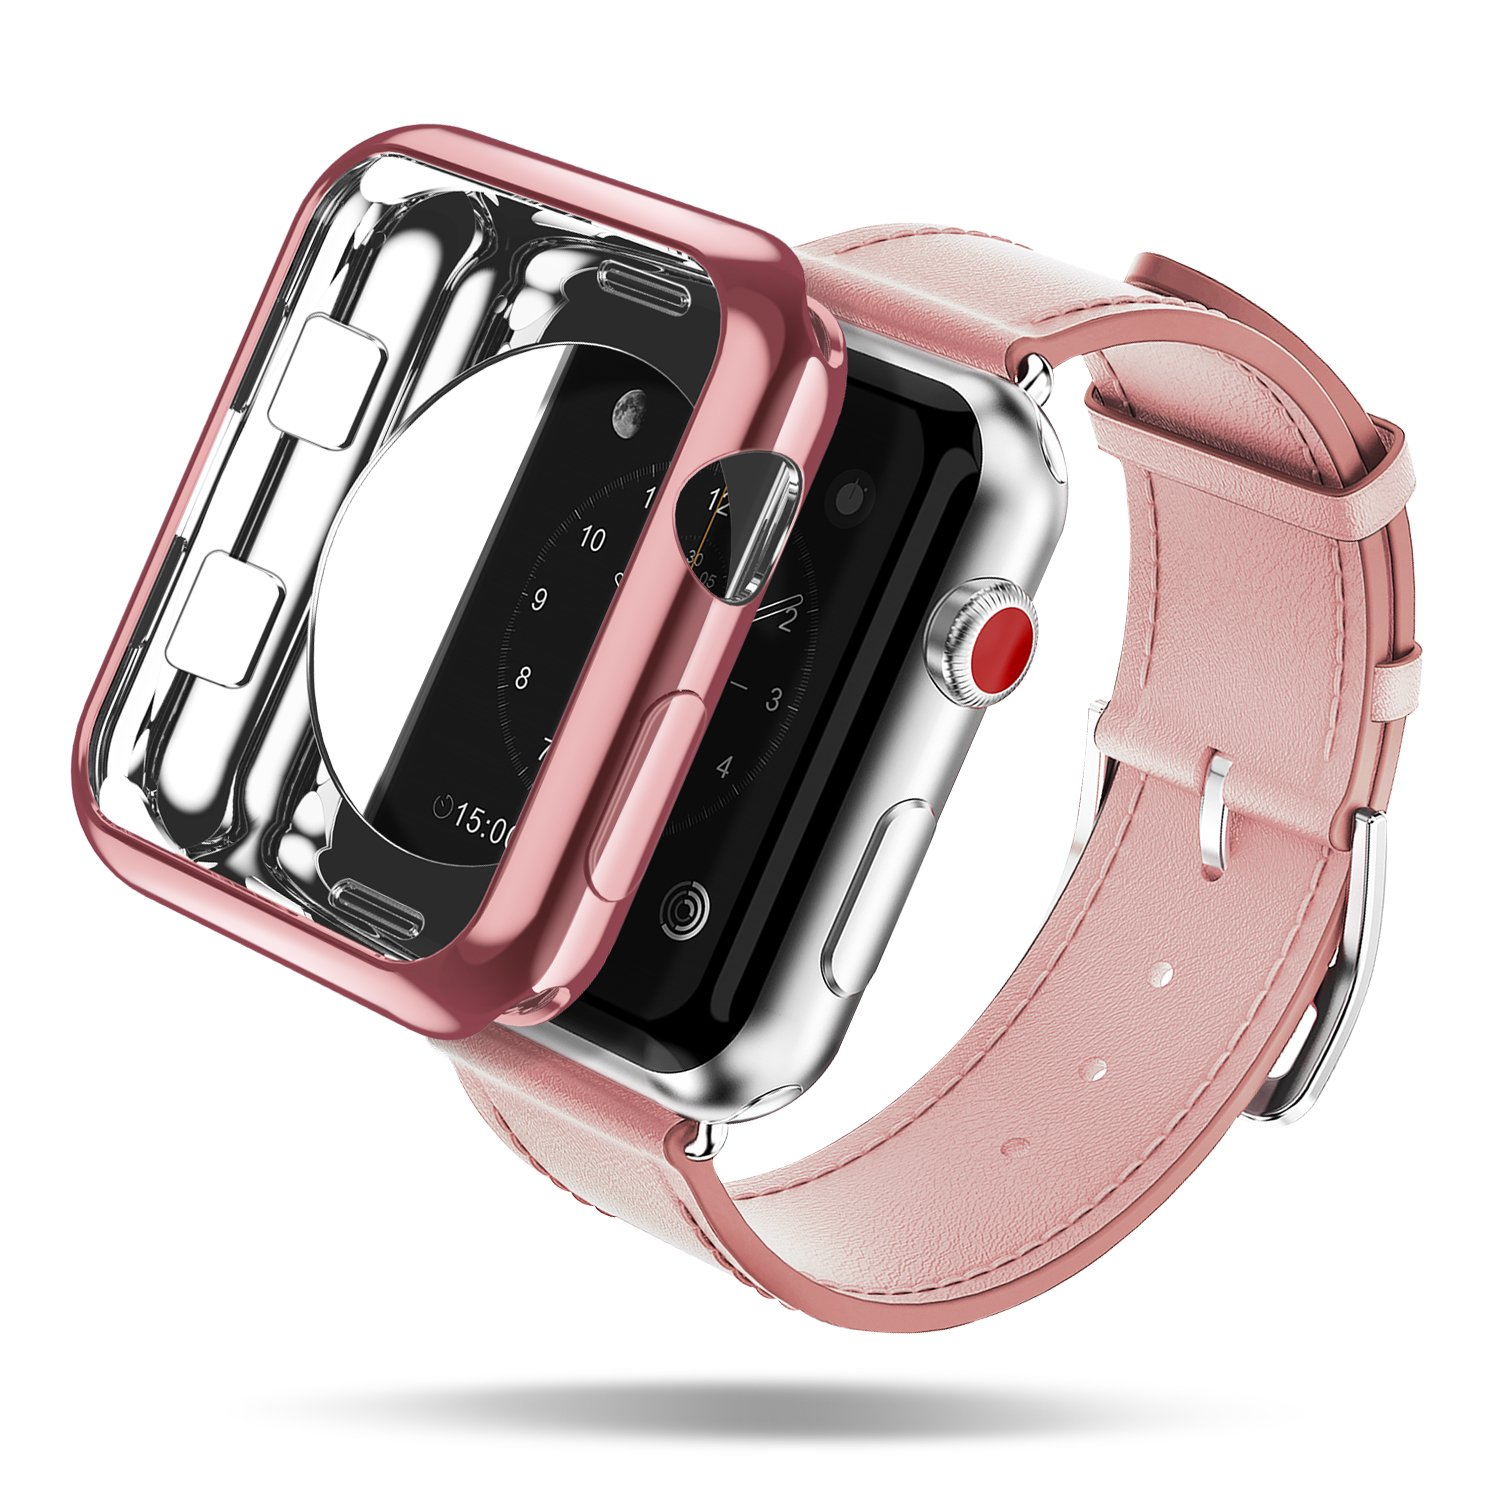 Apple Watch Case, DUX DUCIS Ultra Slim Lightweight Protective Bumper iWatch Cover for All Versions 38mm Apple Watch Series 3 / Series 2 Sport & Edition ( One Free TPU Case As Extra Gift ) - Rose Gold